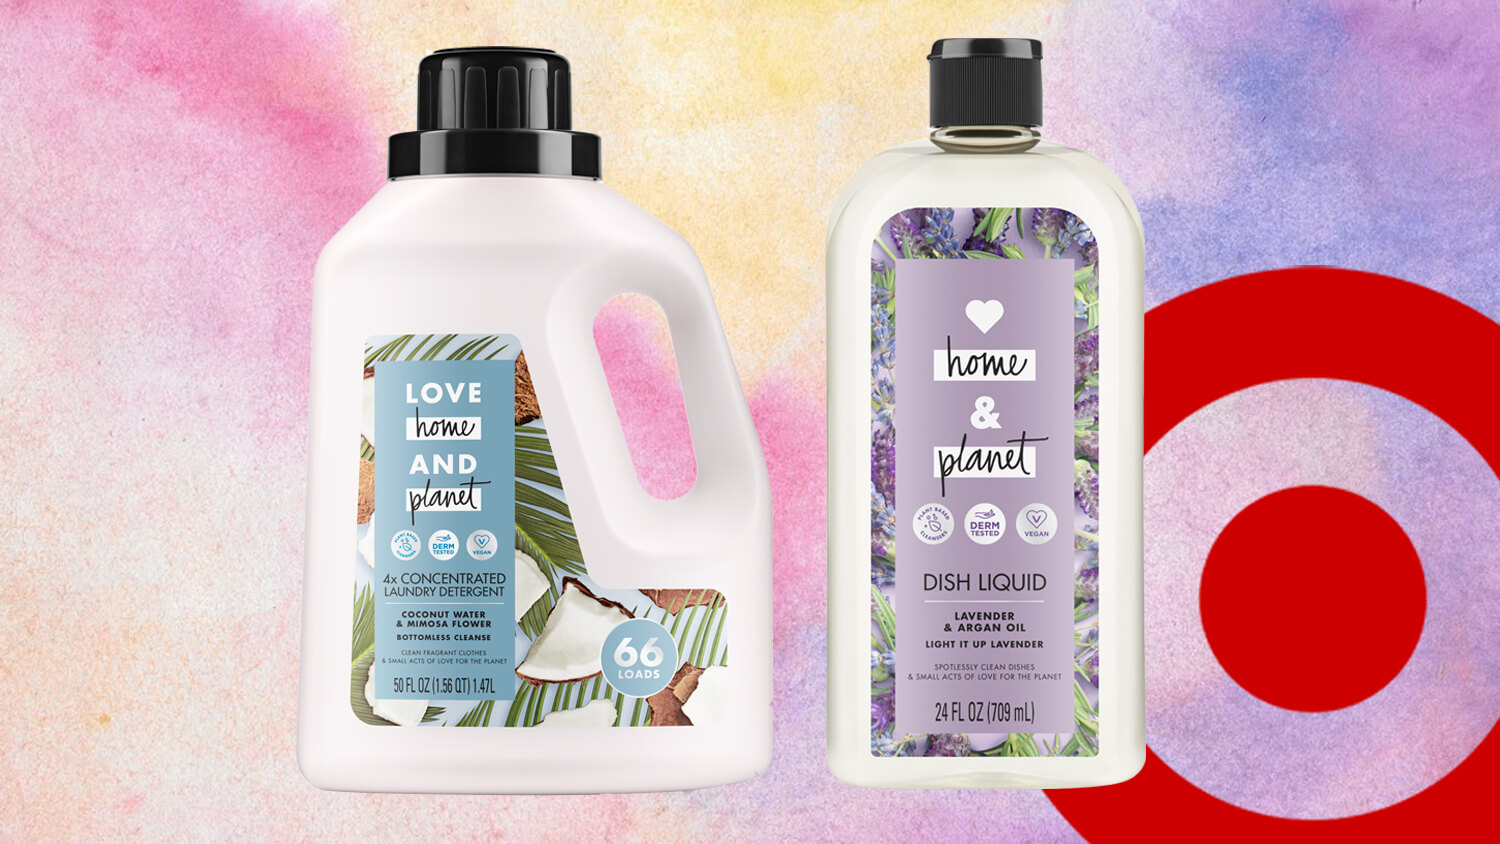 Unilever Launches 38 Sustainable 'Love Home and Planet' Cruelty-Free Home-Cleaning Products at Target